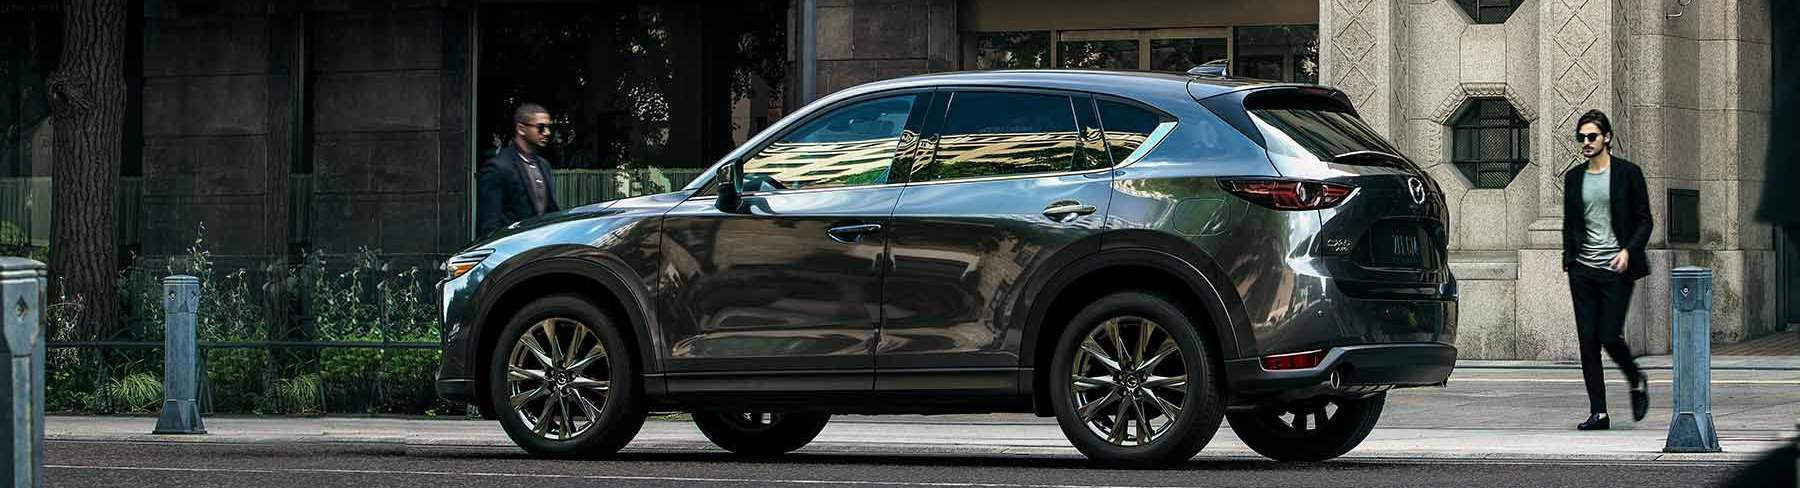 2020 Mazda CX-5 for Sale near Washington, DC